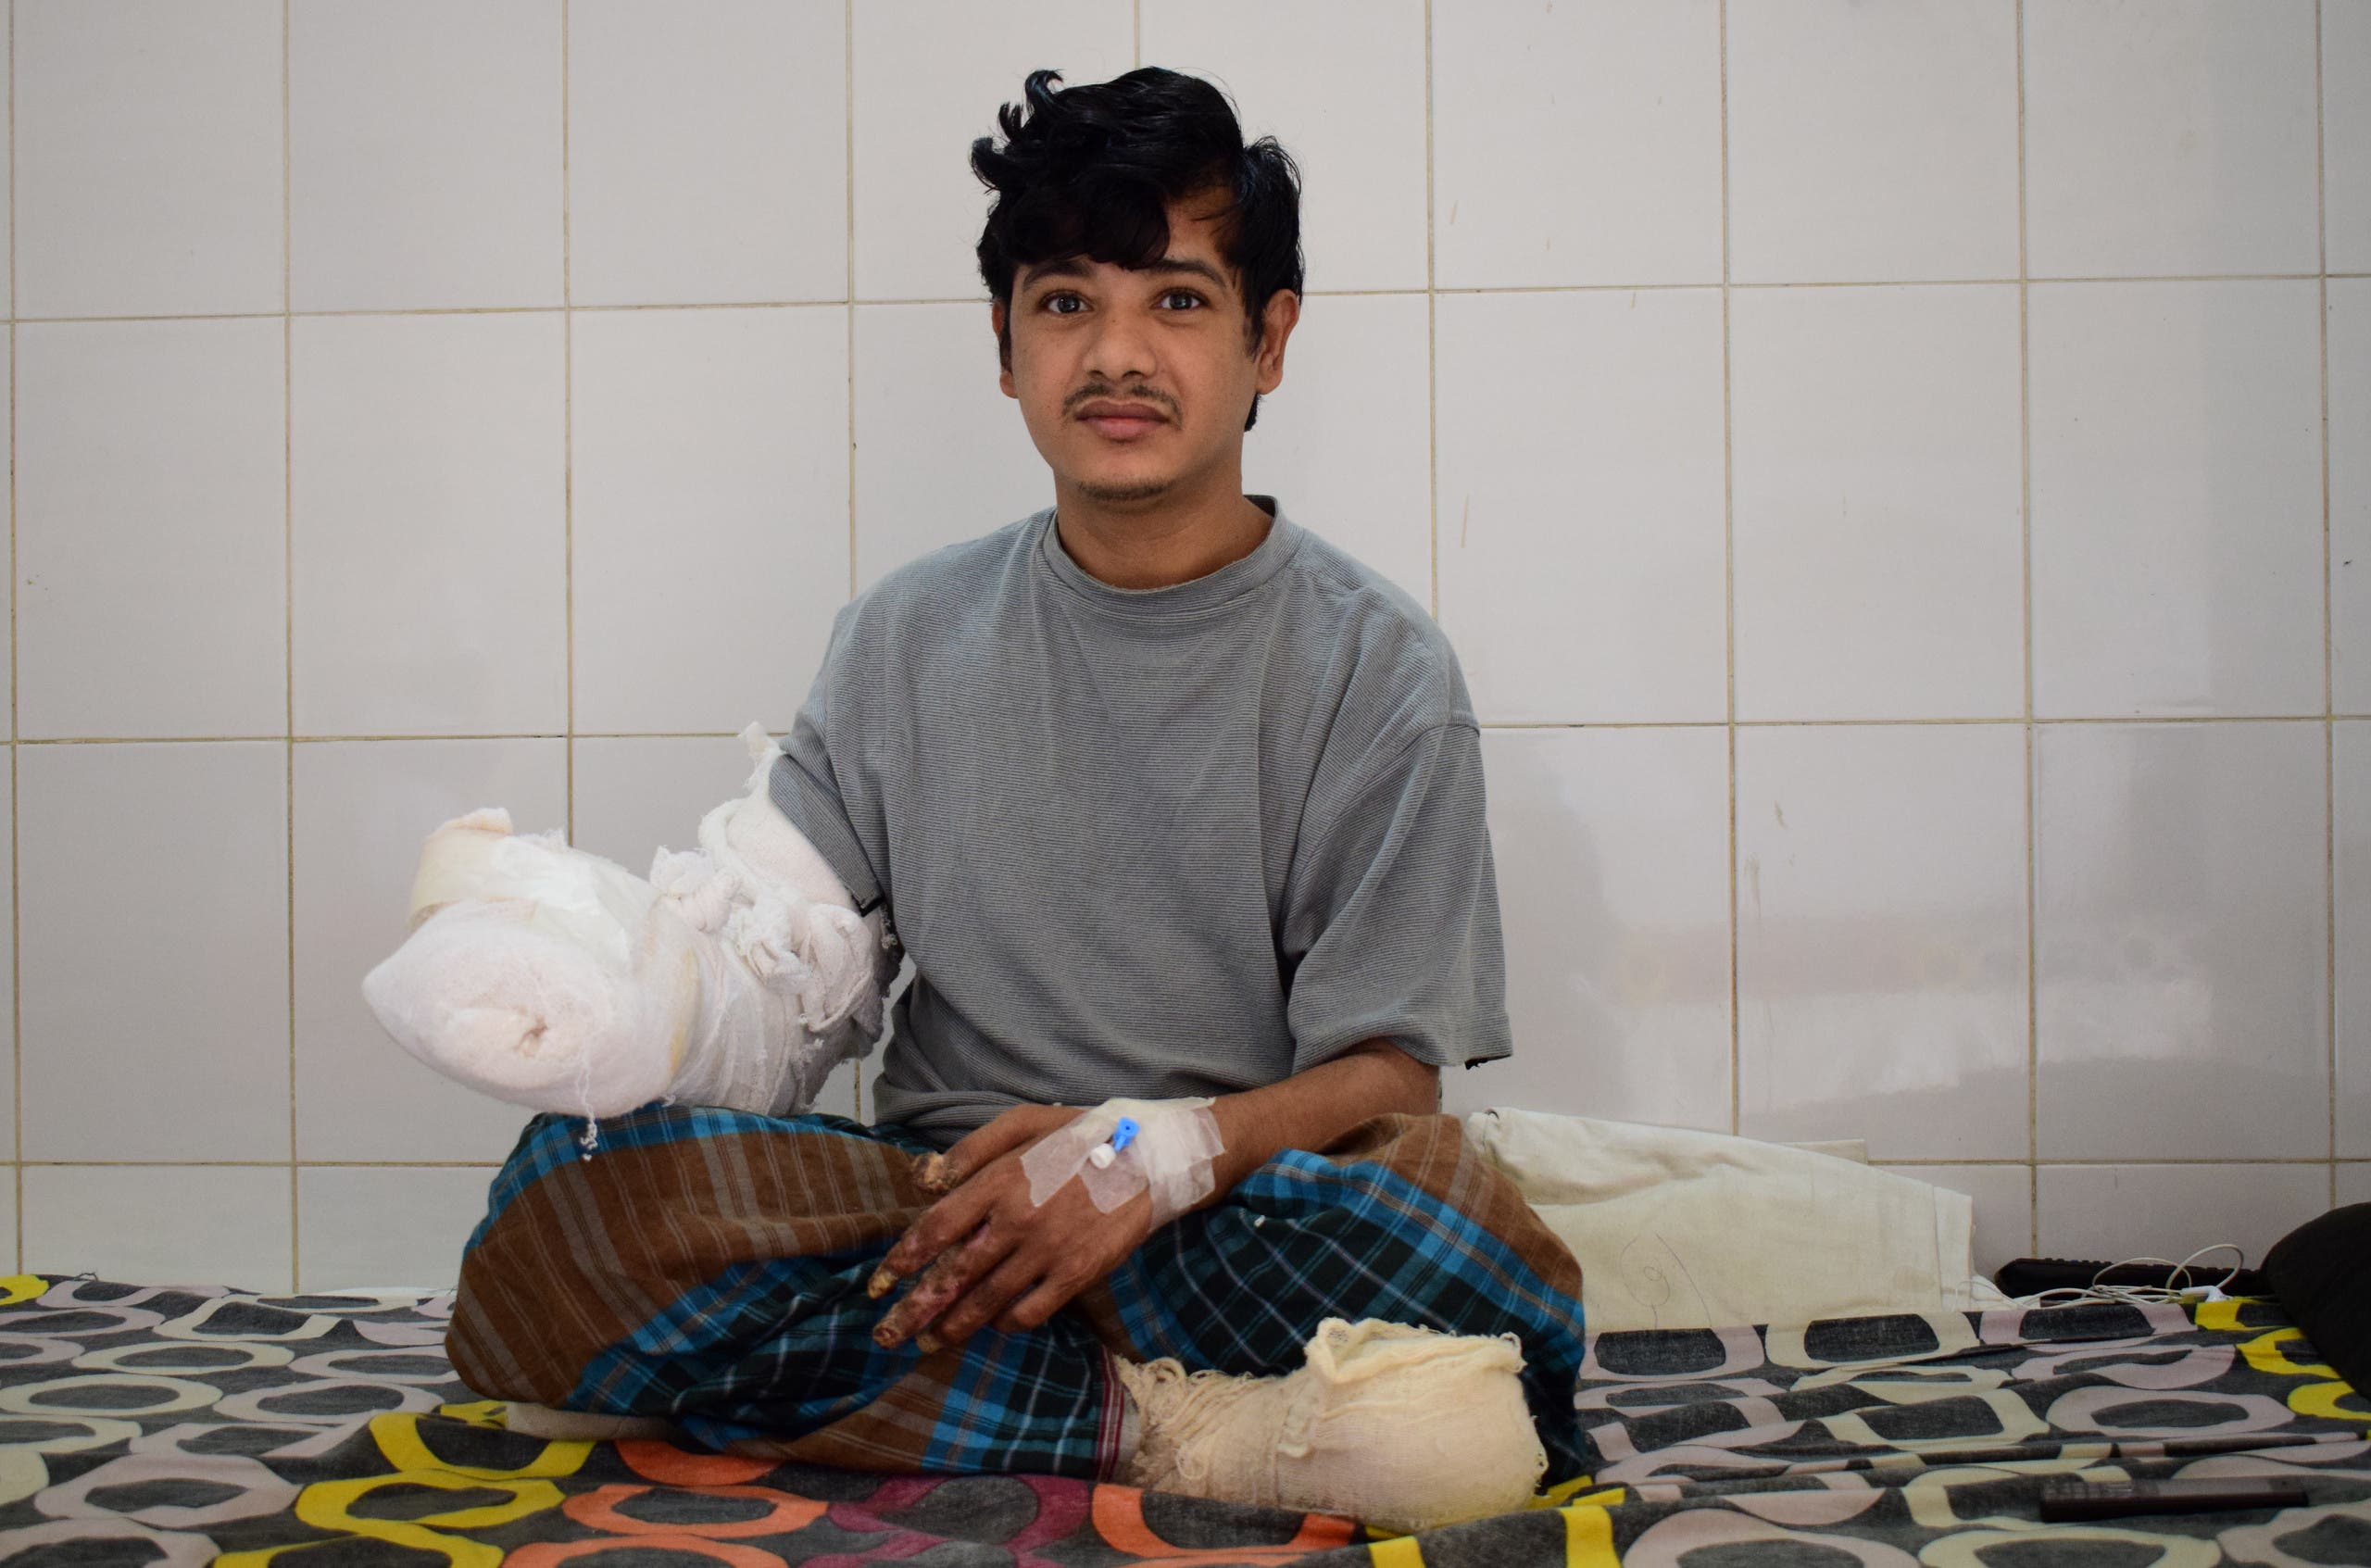 Bangladeshi man Abdul Bajander rests a day after a surgery at Dhaka Medical College Hospital in Dhaka on February 21, 2016. A Bangladeshi man dubbed 'tree man' due to large bark-like warts growing on his hands and feet underwent successful surgery on February 20 to remove some of the growths. AFP PHOTO/ Munir uz ZAMAN MUNIR UZ ZAMAN / AFP